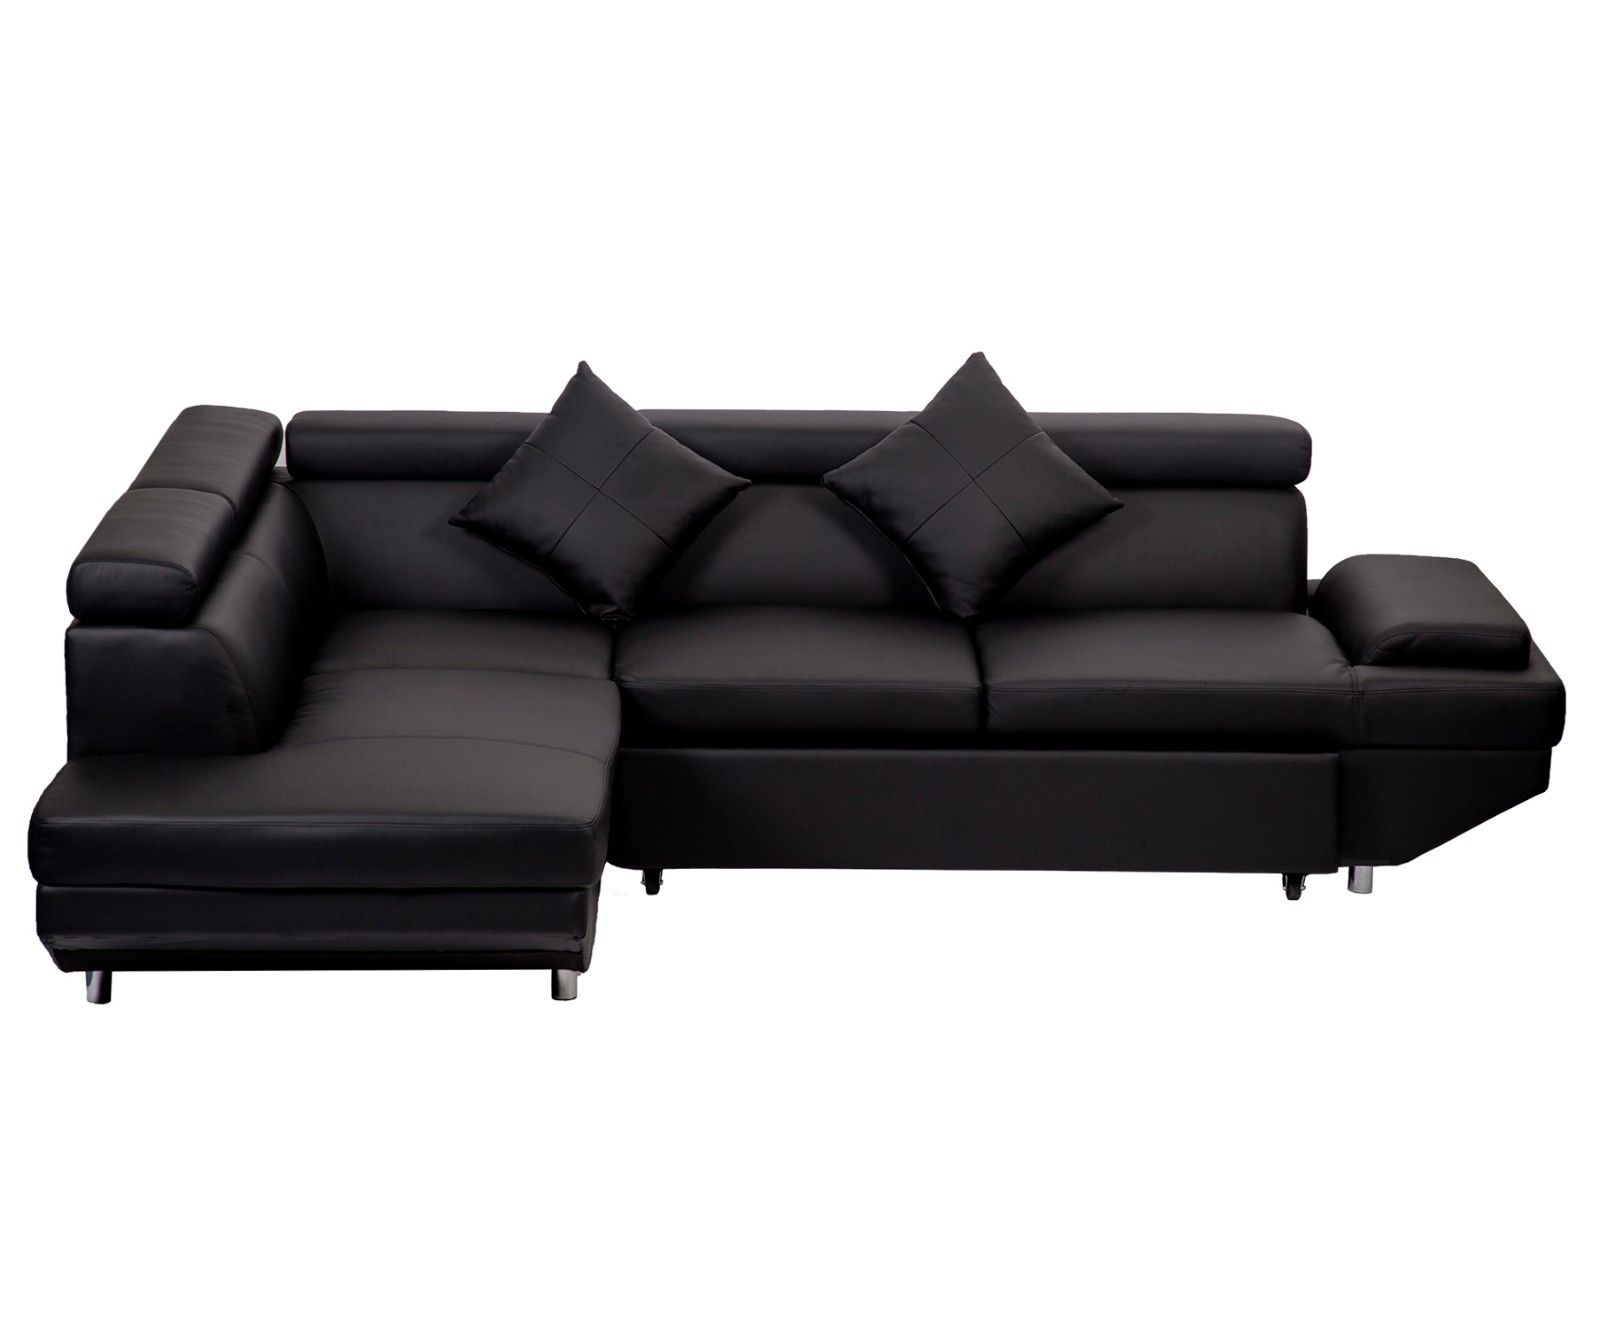 New Modern Contemporary Leather Sectional Corner Sofa Bed U95r U95l